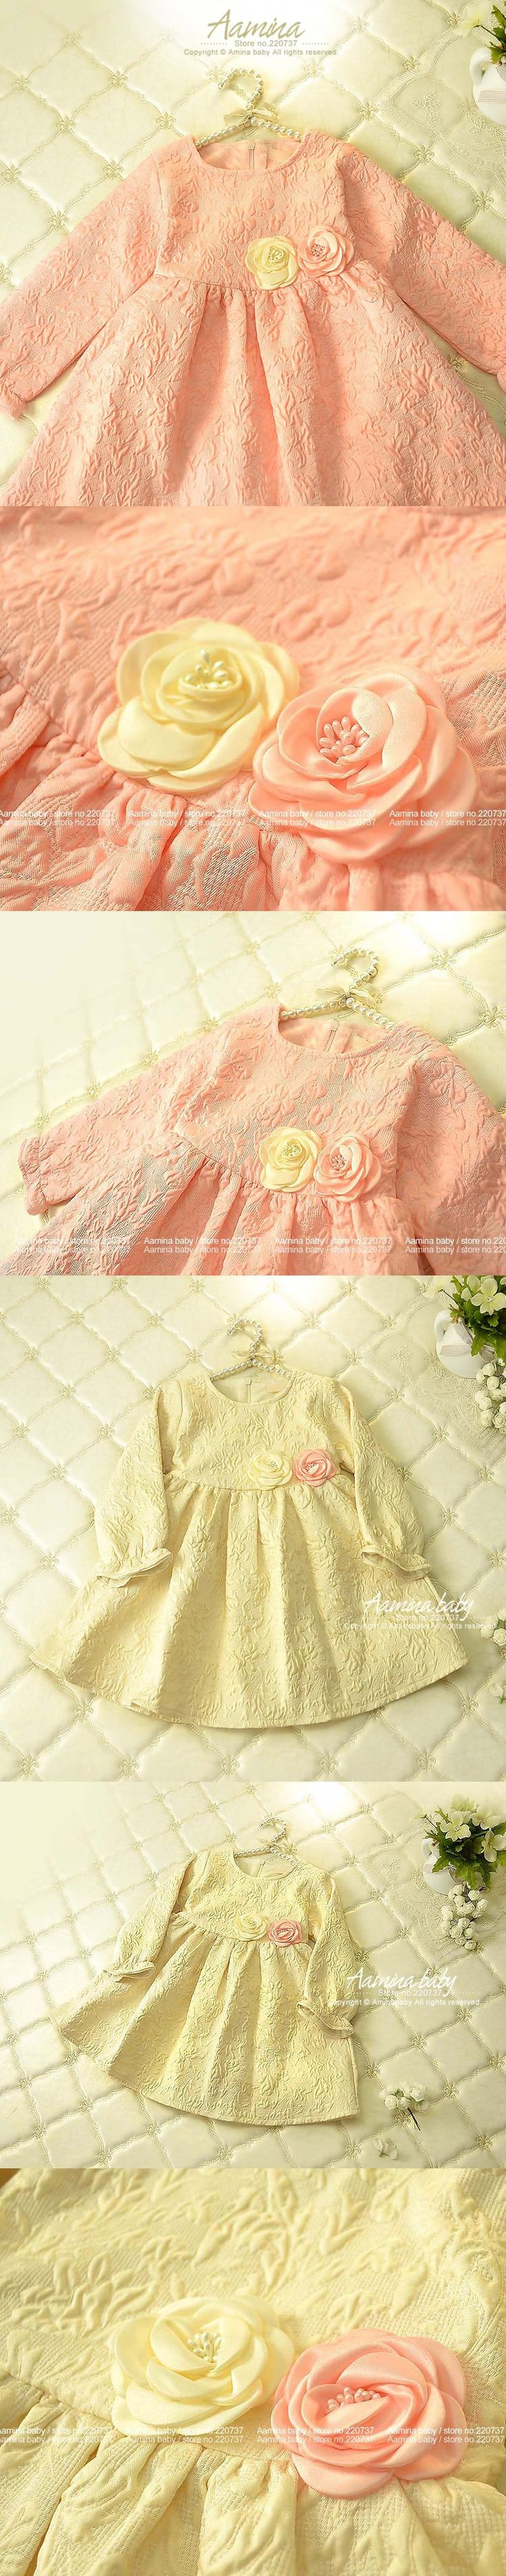 Retail Girl Party Dress Infant 2016 Toddler Girl Dresses Autumn A-line Princess Dress Kids Clothes Girl Christmas Dress #601219 $22